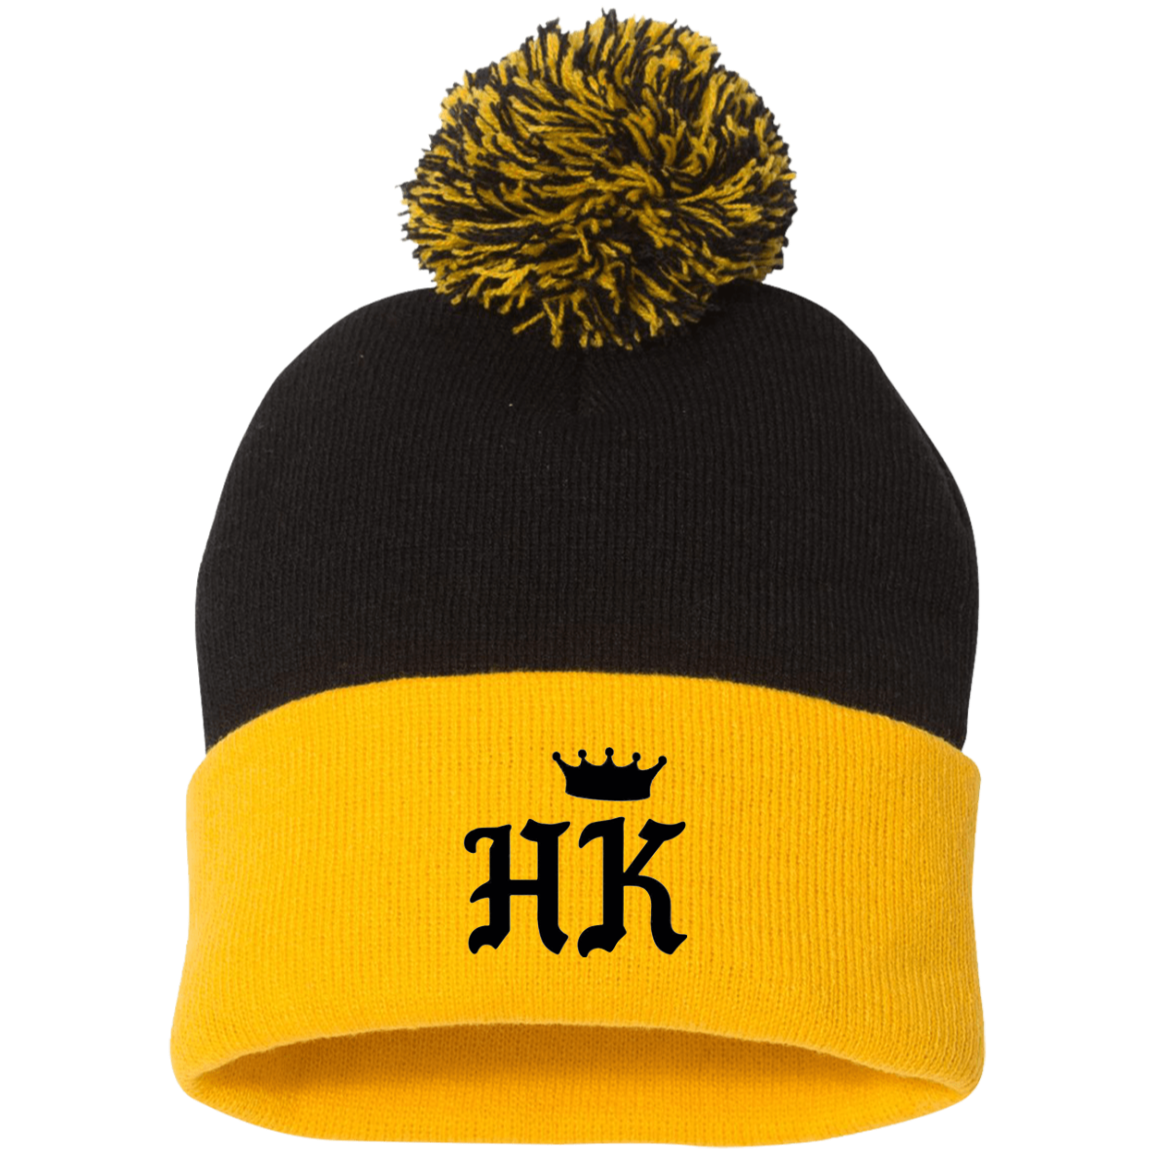 The H&K Black Crown Pom Pom Knit Cap